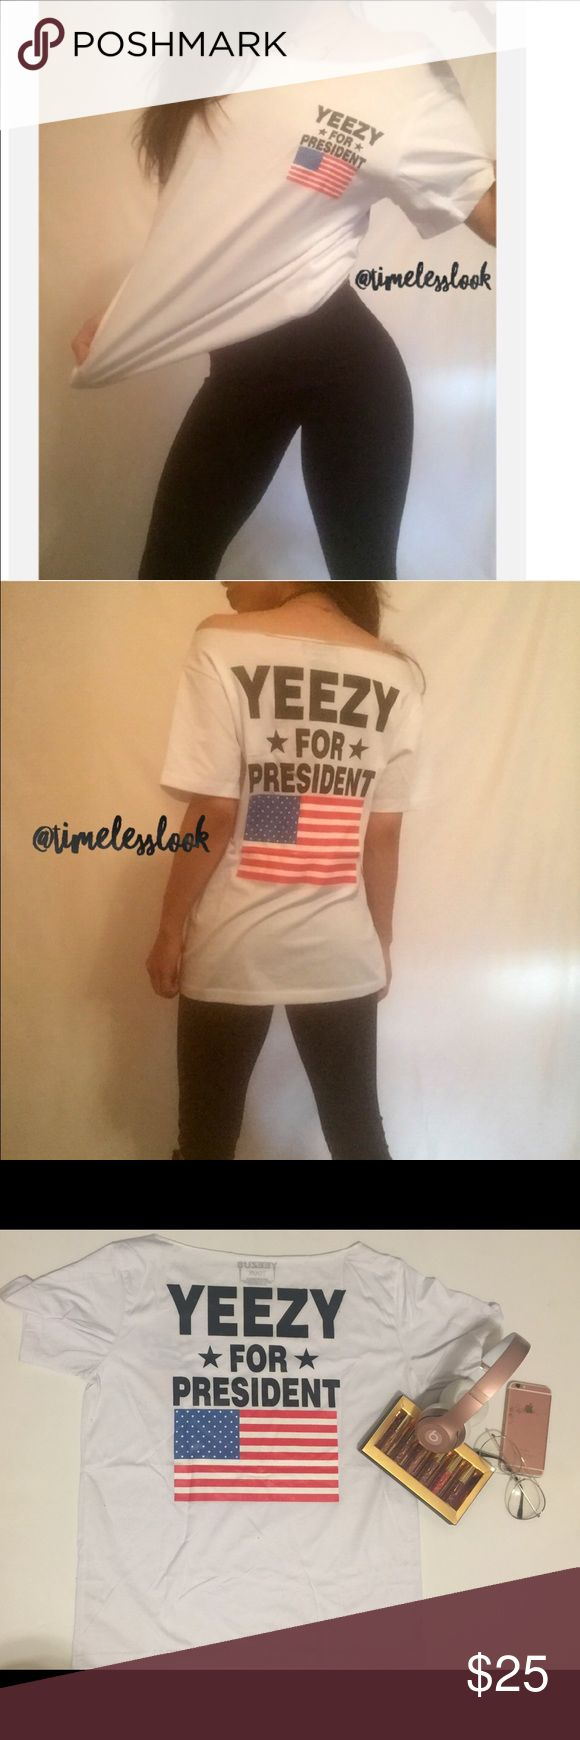 """Yeezy for President off shoulder yeezy t shirt •brand new  •ships tomorrow •boutique - unbranded - brand added for views  •no trades  •true to size - small •material: 95%knit 5% elastane  Meant fit fit shrugged or loungy - off the shoulder  @goguios in insta 📸 (account manager) modeling Super popular look for this fall - election season - yeezy yeezus Kanye west concert tour tee  Please visit """"Closet Rules"""" for more info about us :) Yeezy Tops"""